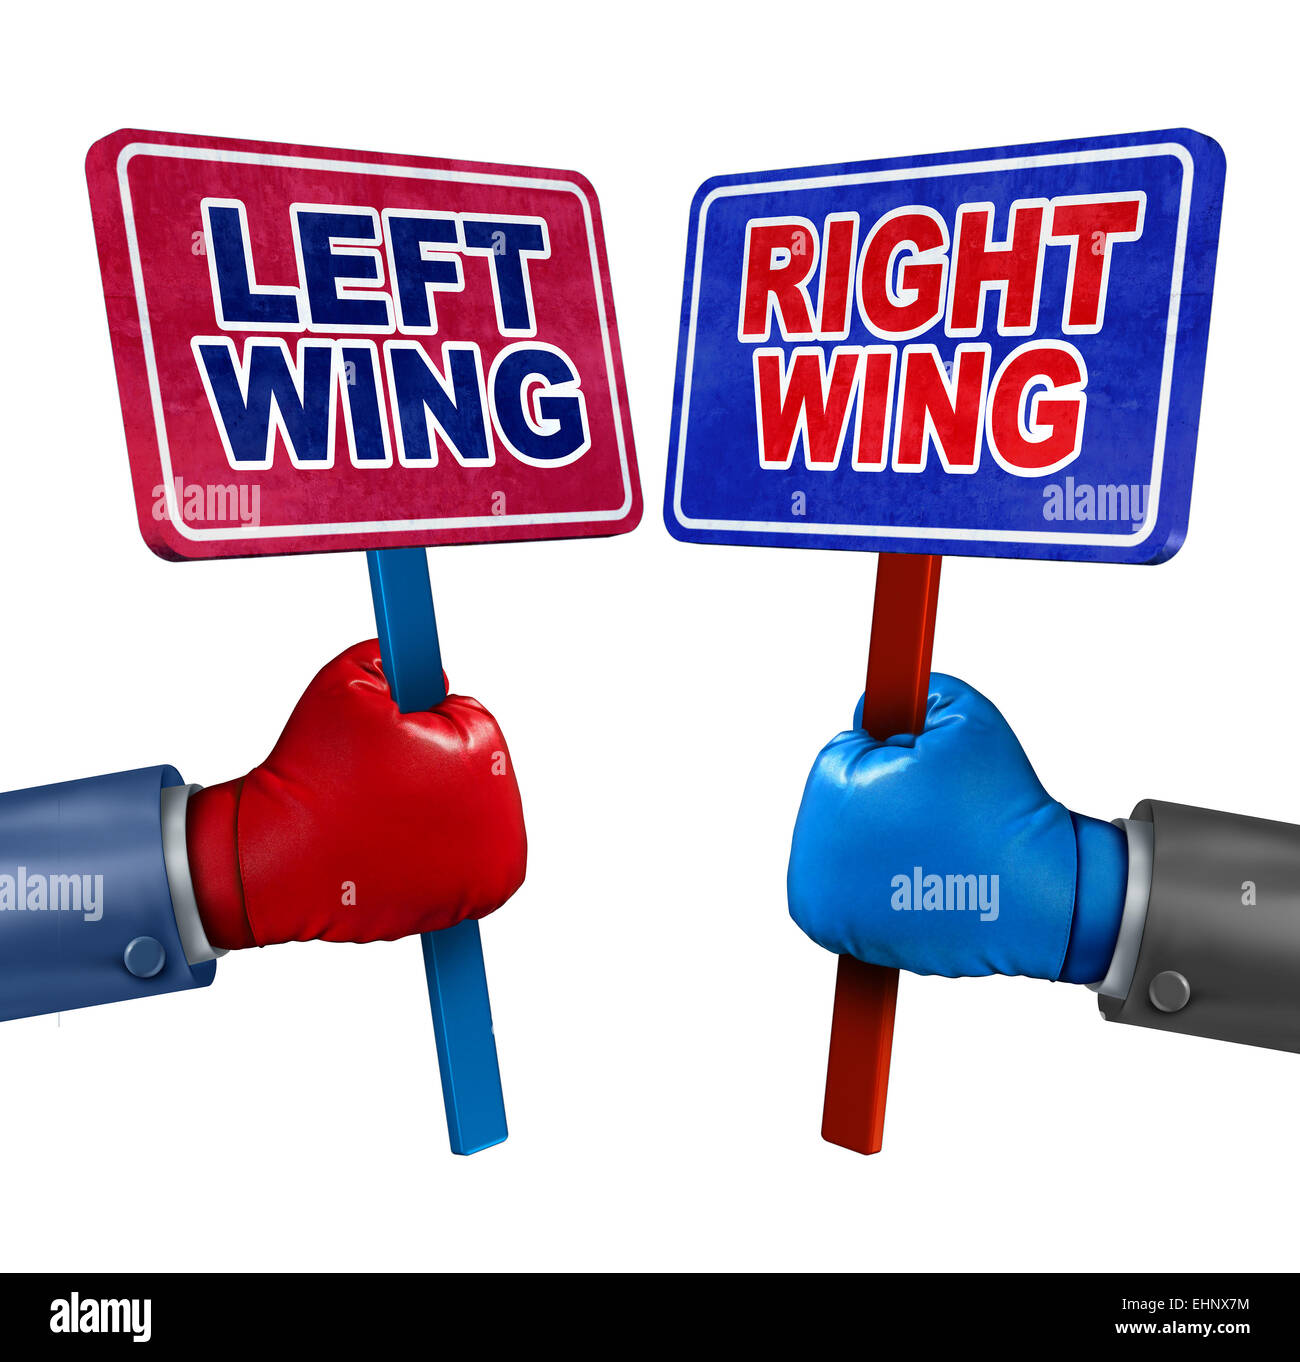 Left and right politics concept as two election candidates representing conservative and liberal values as democrat - Stock Image